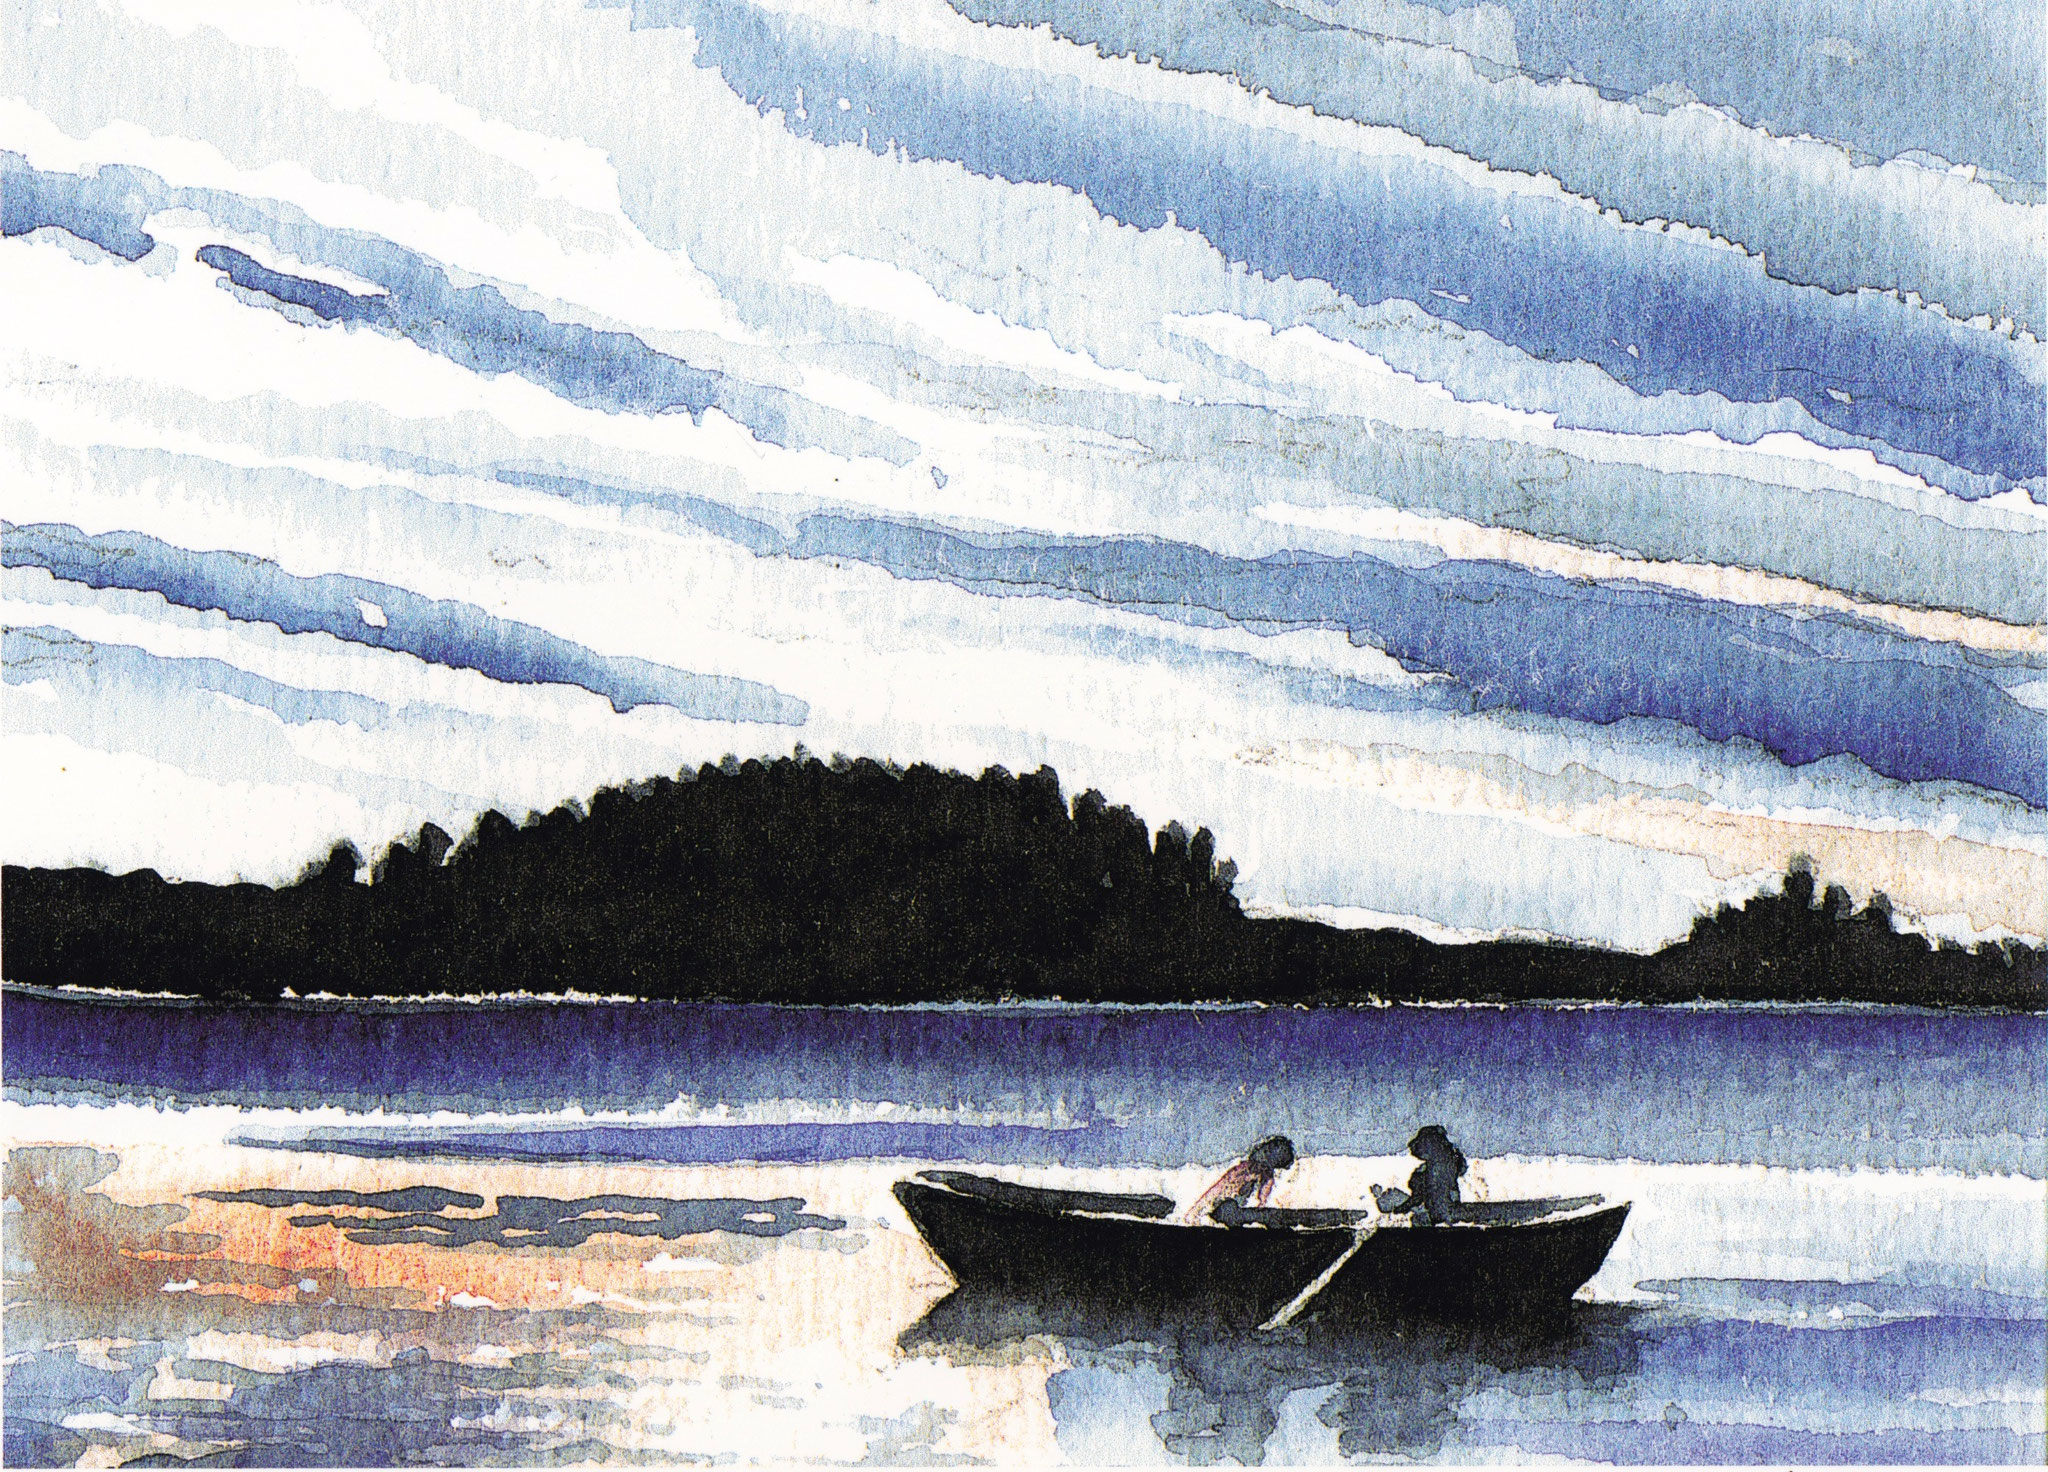 ' Abendstimmung am See ' Aquarell/Pittstift, 17 x 22 cm, 2006